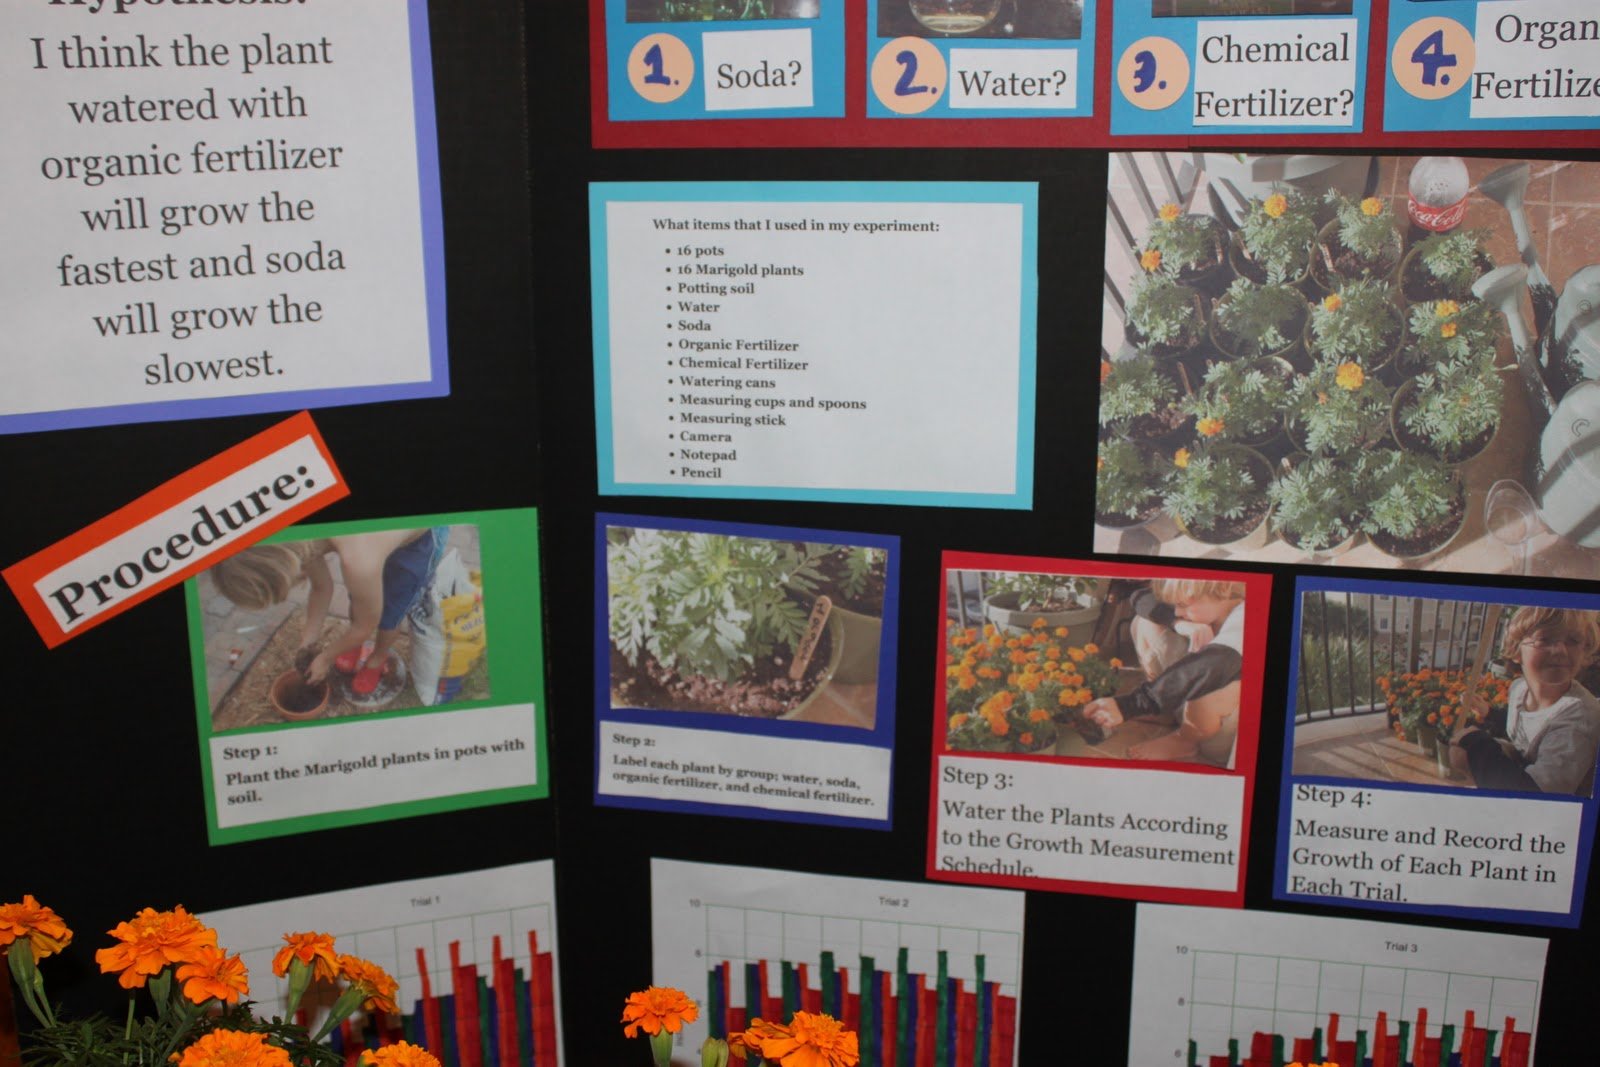 solar system science fair projects hypothesis pics about space plant science fair projects